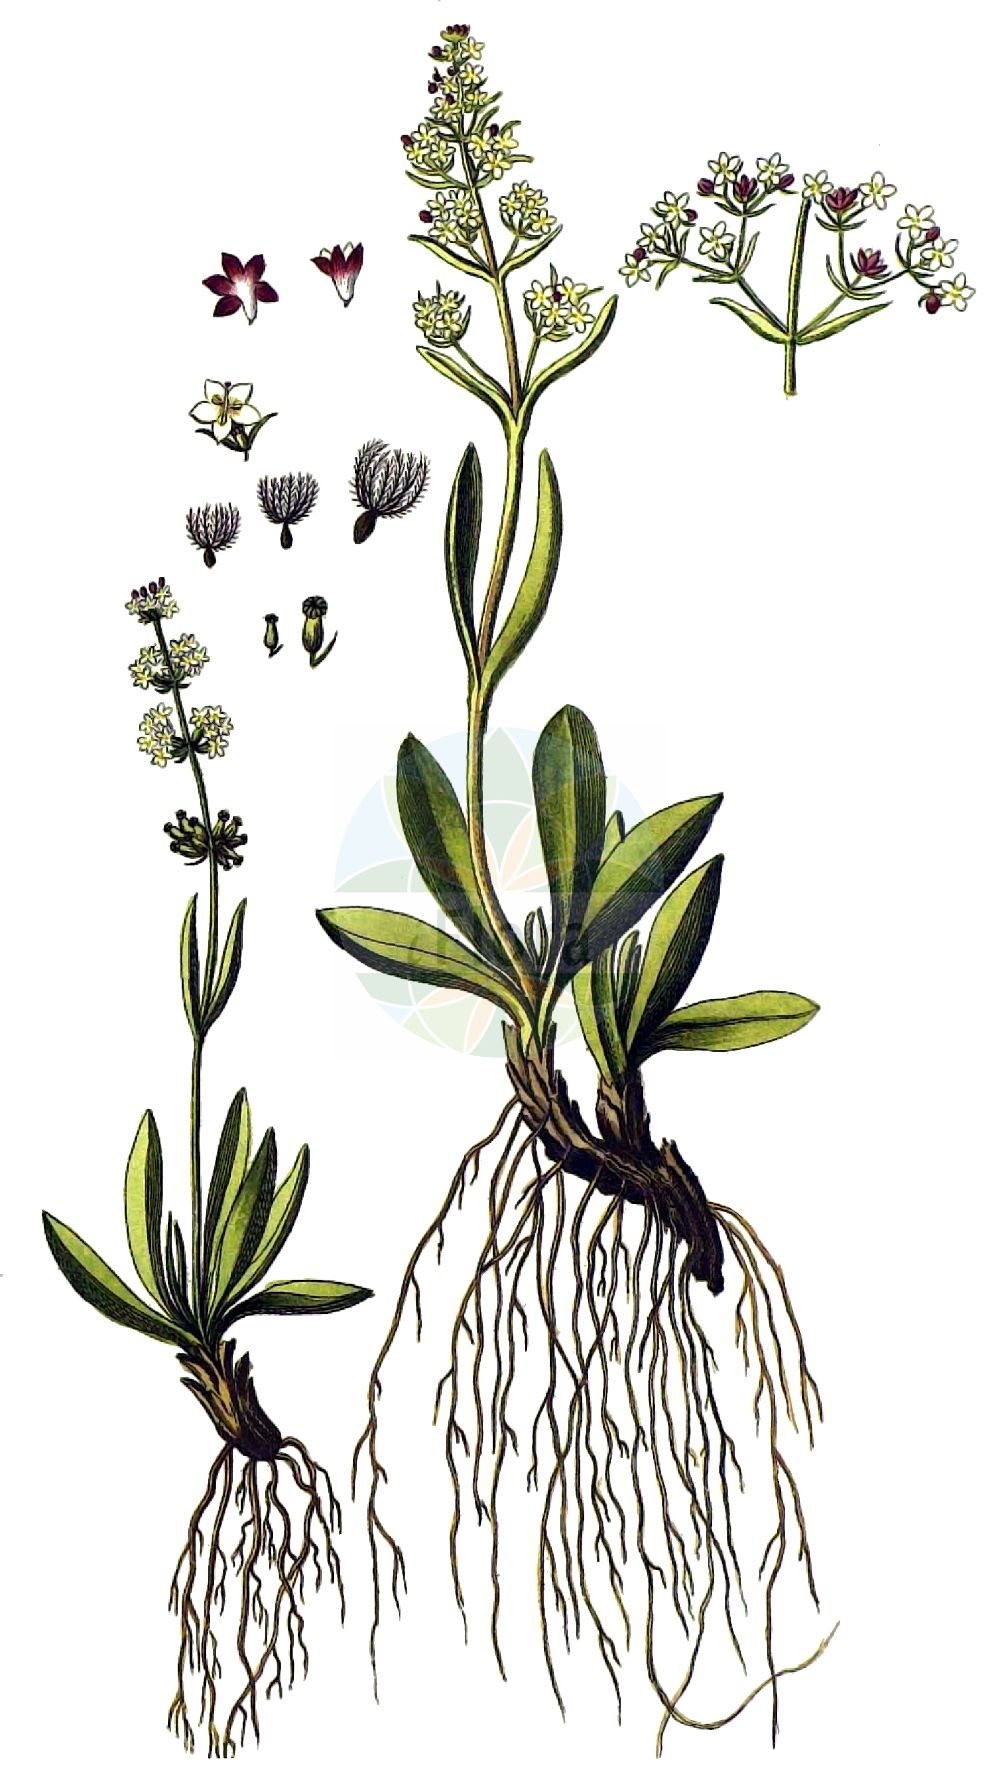 Historische Abbildung von Valeriana celtica. Das Bild zeigt Blatt, Bluete, Frucht und Same. ---- Historical Drawing of Valeriana celtica.The image is showing leaf, flower, fruit and seed.(Valeriana celtica,Valeriana celtica,Valeriana,Baldrian,Valerian,Caprifoliaceae,Geissblattgewaechse,Honeysuckle family,Blatt,Bluete,Frucht,Same,leaf,flower,fruit,seed,von Jacquin (1727-1817))